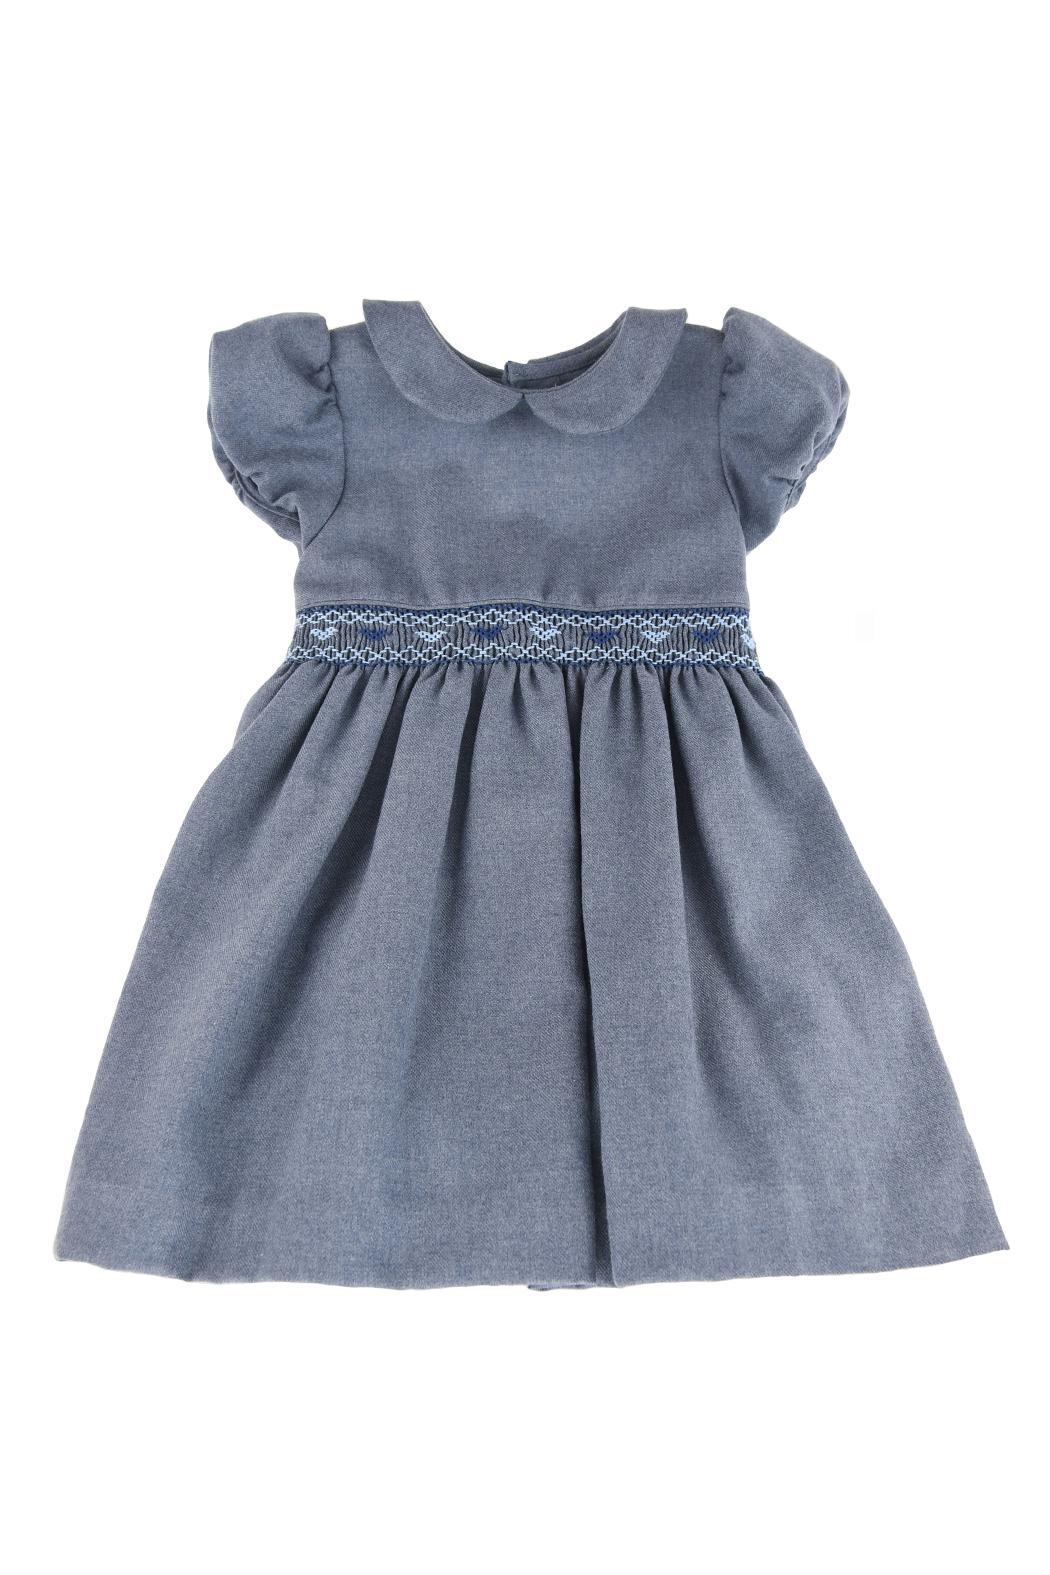 Malvi & Co. Blue Heart Dress. - Front Cropped Image